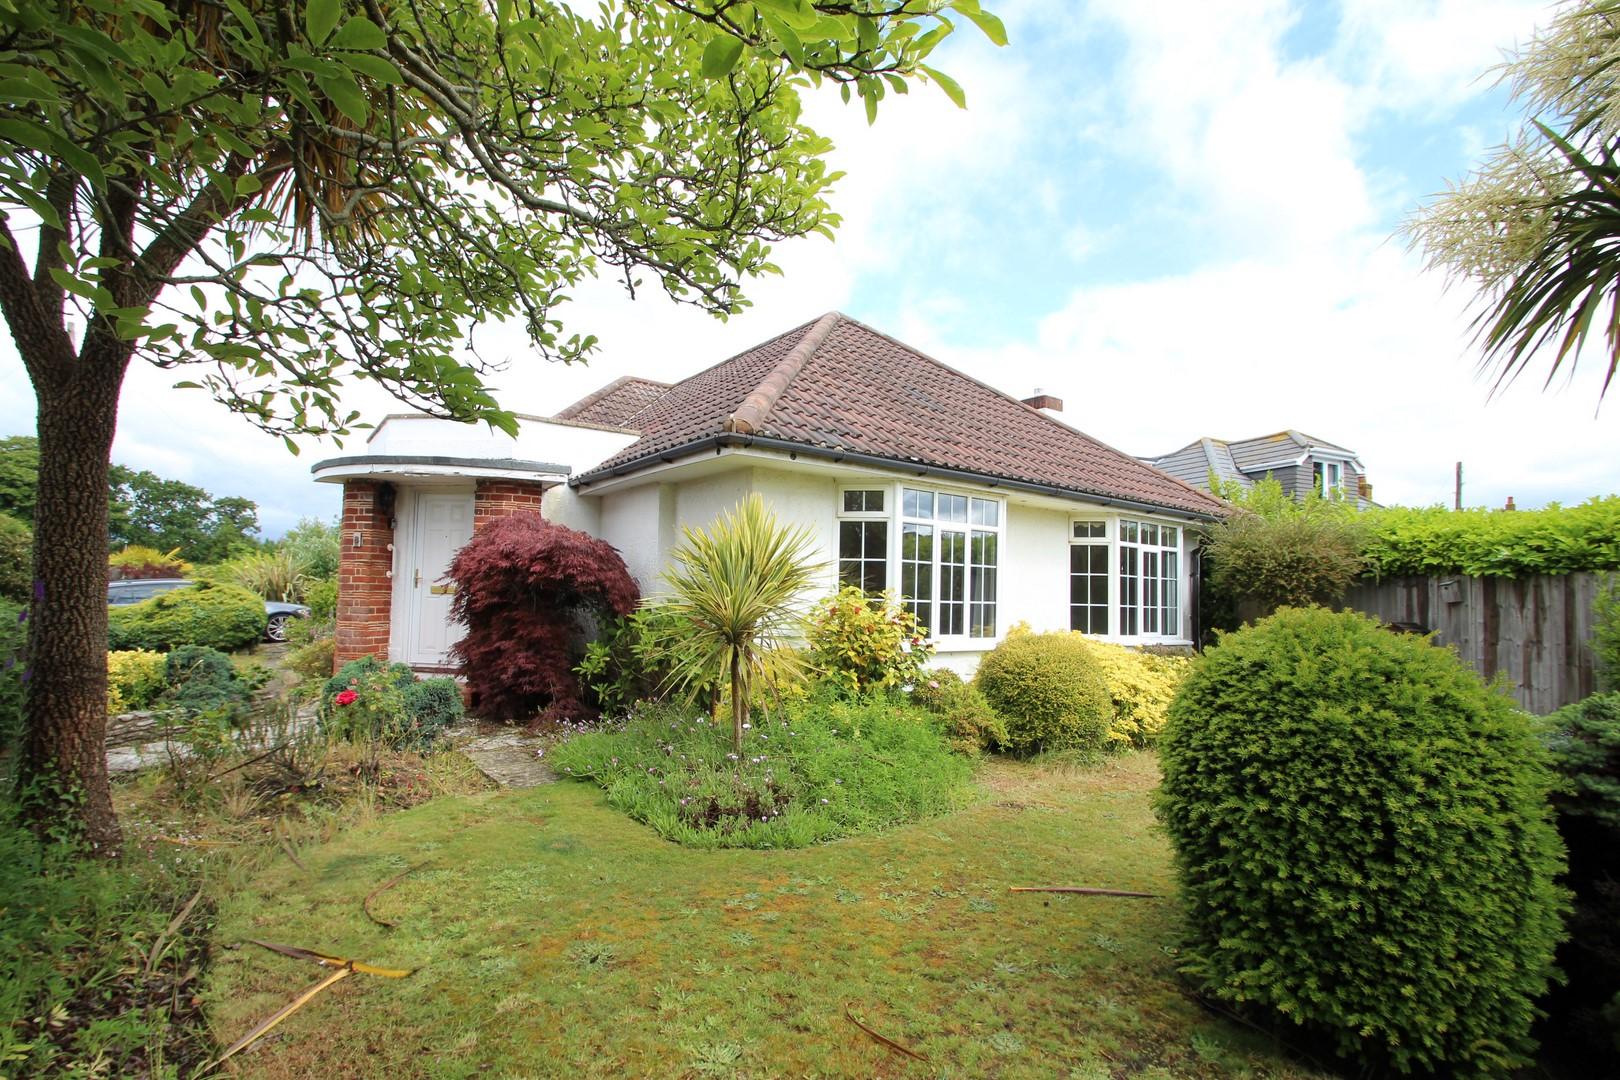 3 Bedroom Bungalow in Friars Cliff